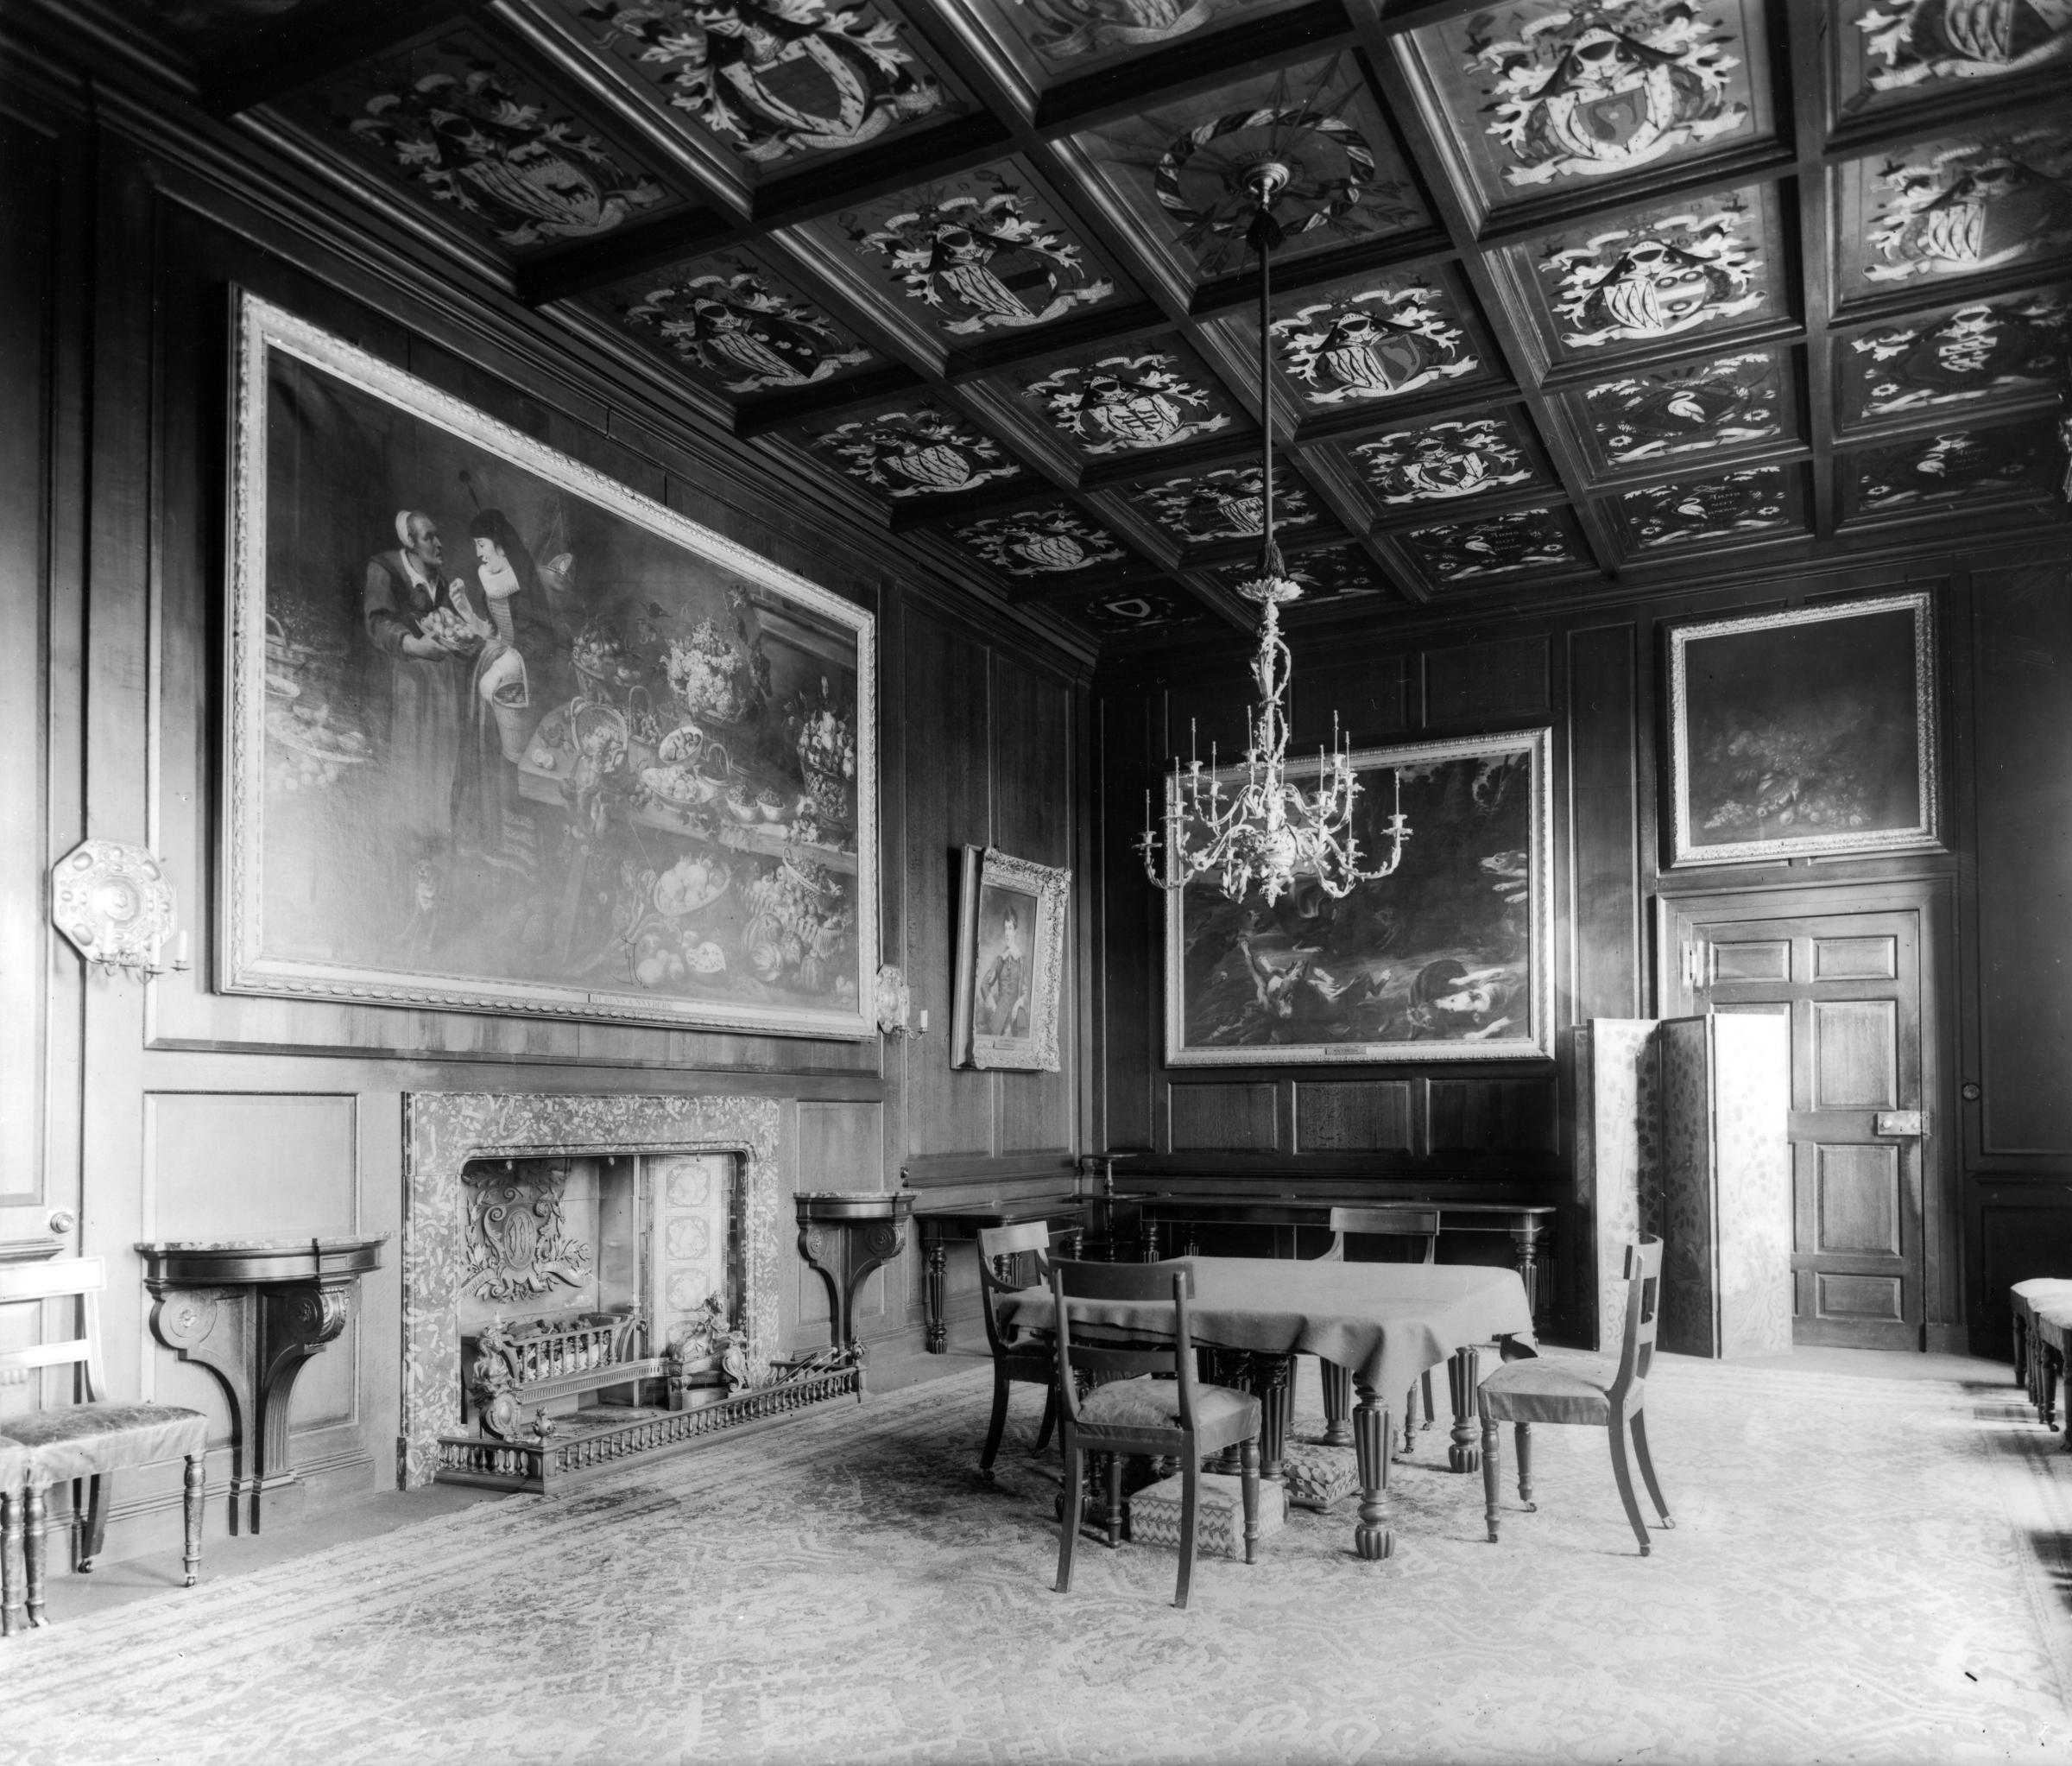 View of the dining room at Streatlam Castle with its armorial ceiling. The castle was built in 1718 by Sir William Bowes on the site of a 15th Century castle